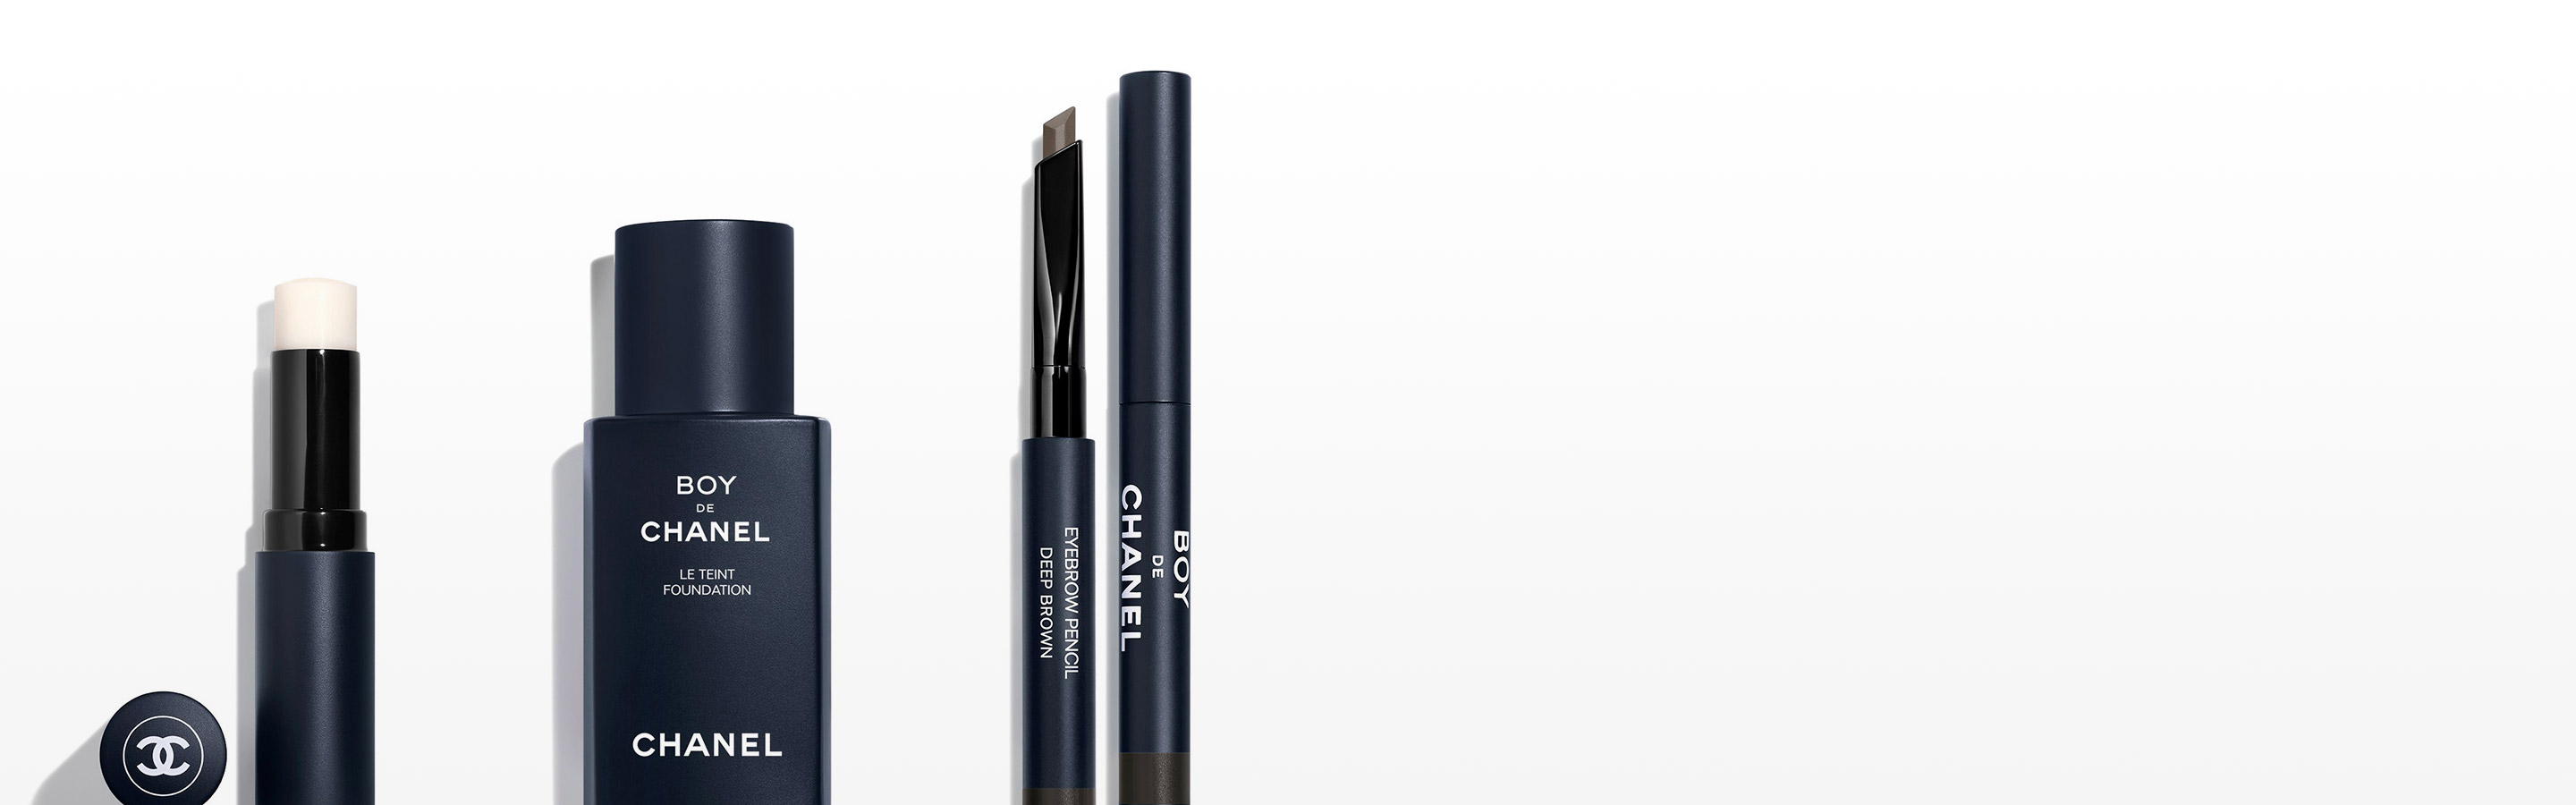 Boy de CHANEL Eyebrow - CHANEL